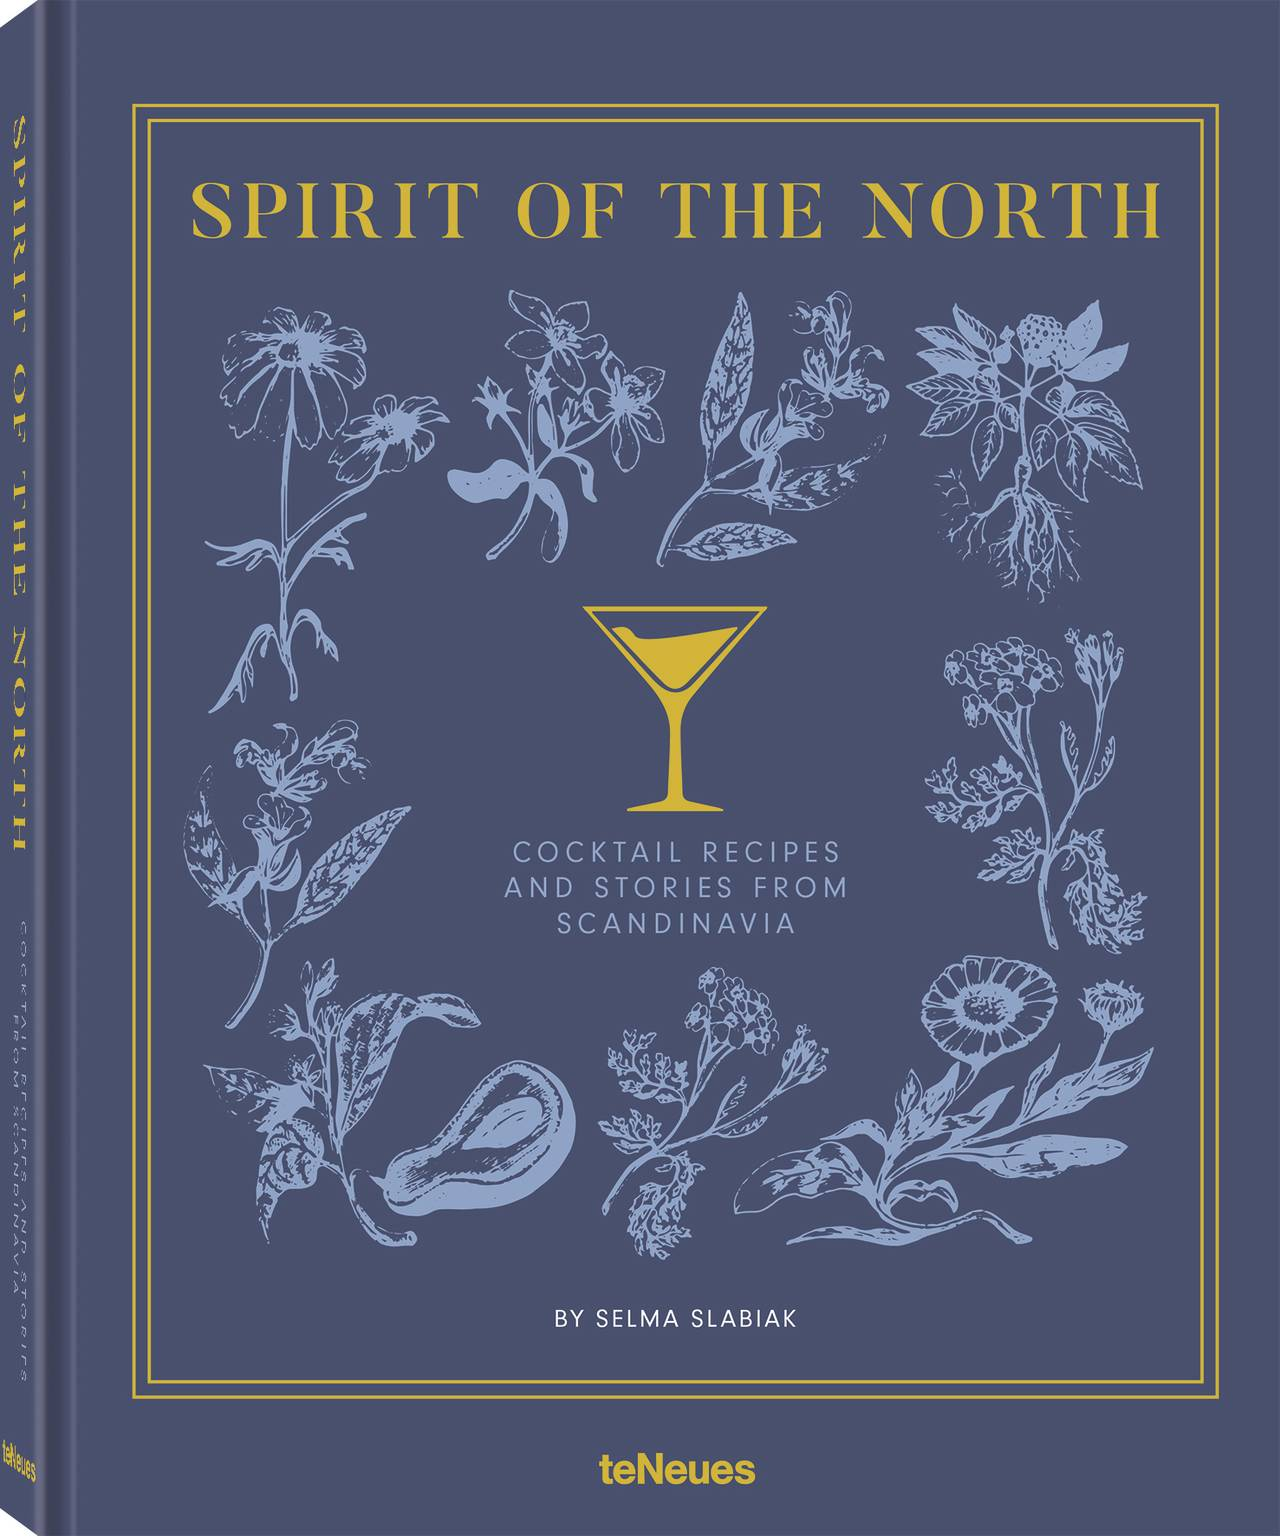 © Spirit of the North - Cocktail Recipes and Stories from Scandinavia by Selma Slabiak, published by teNeues, www.teneues.com